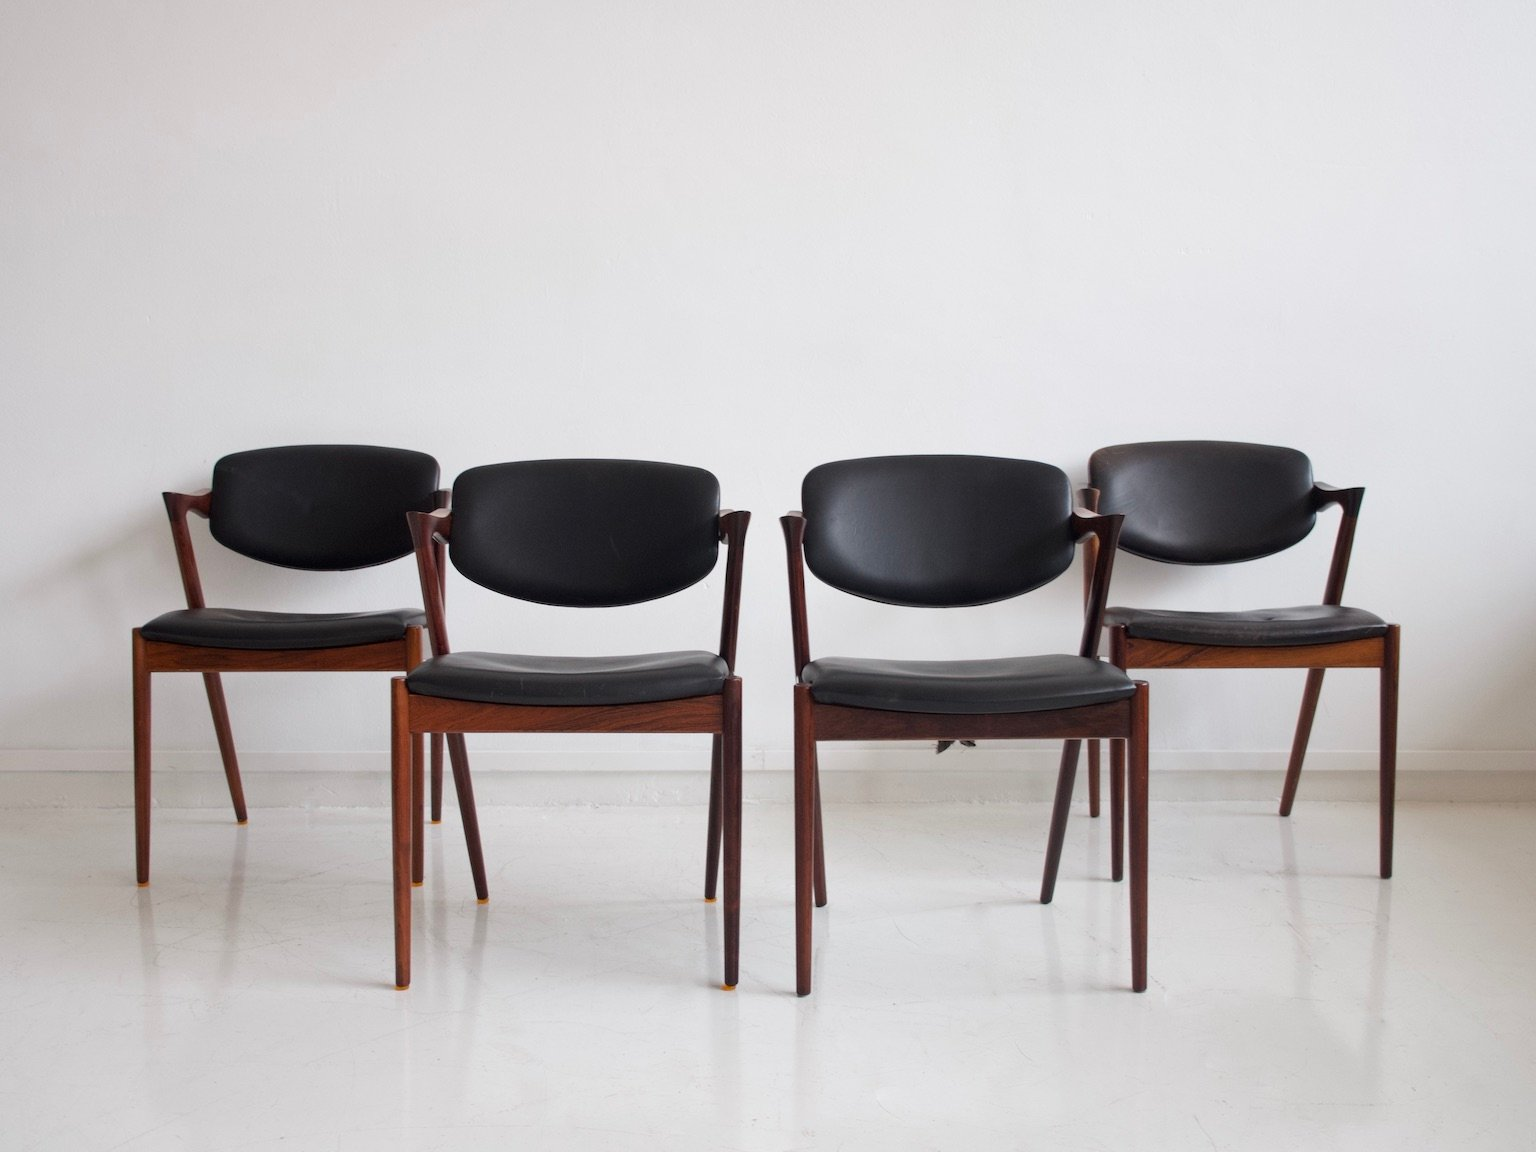 Set Of Four Vintage Leather /& Teak Dining Chairs